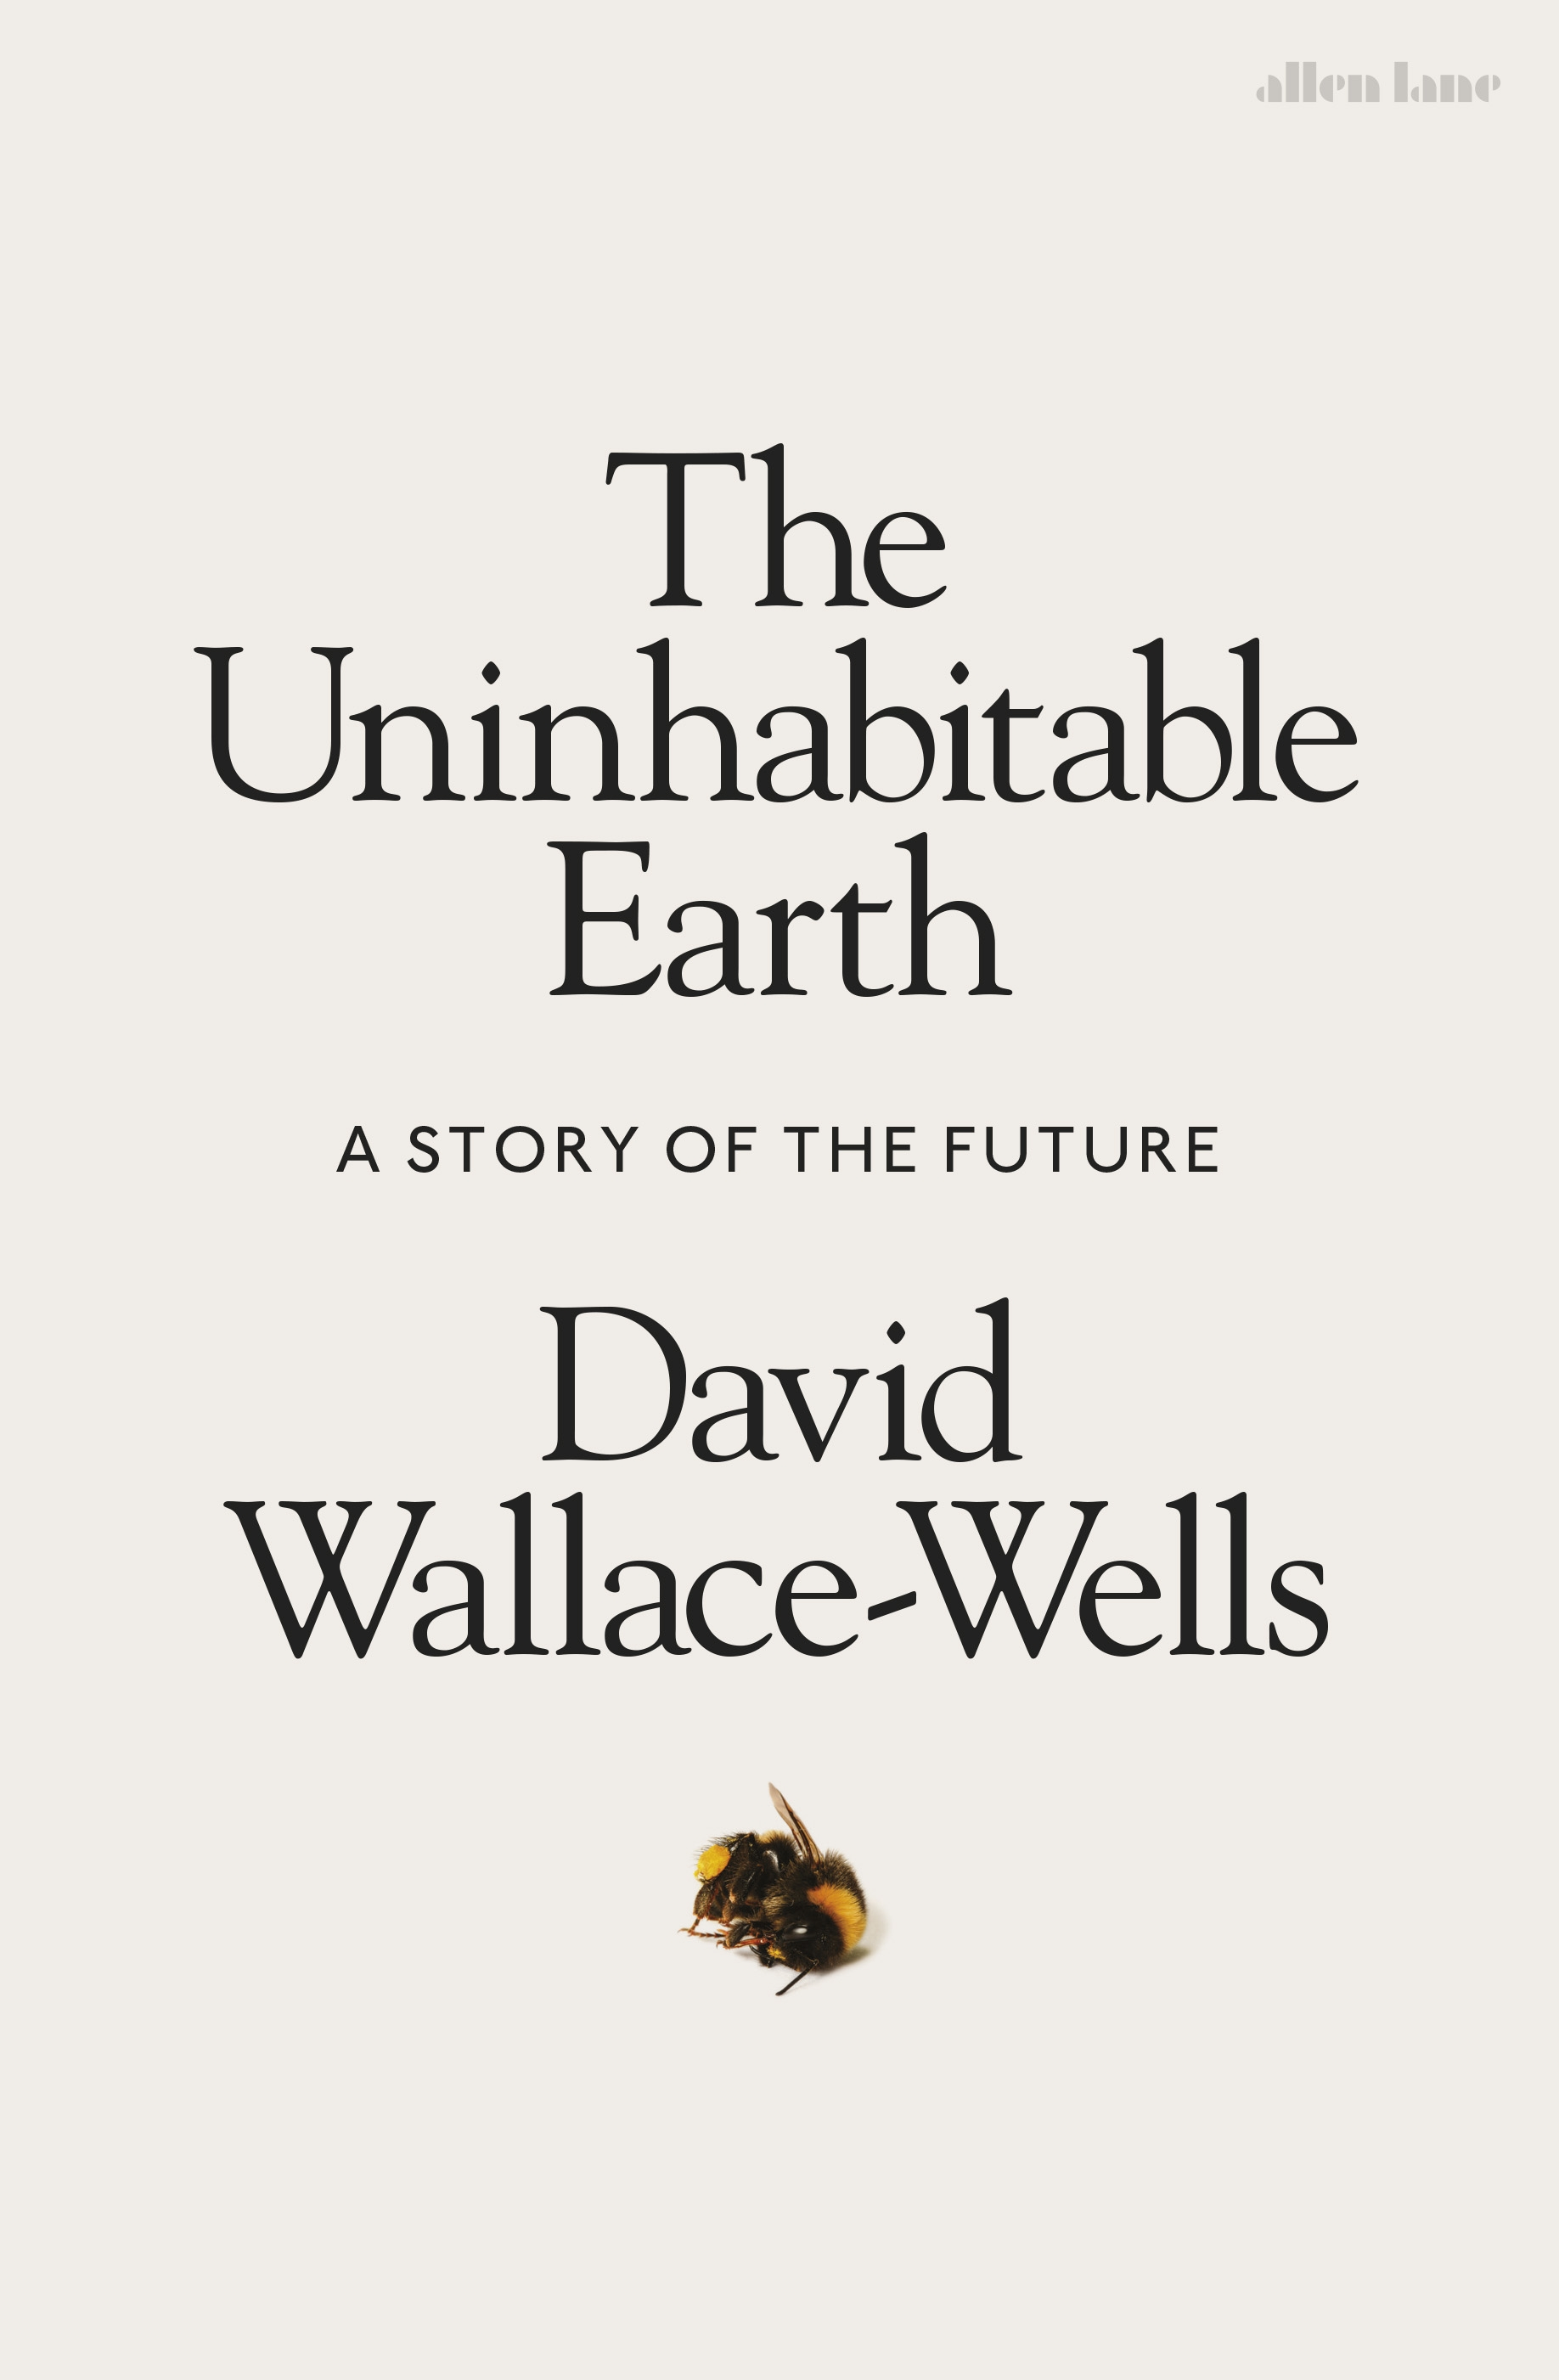 "The Uninhabitable Earth: Life After Warming - by David Wallace-Wells""There's lots of books focused on how we can understand and think about climate change. This one connects with how we can feel about it, fully absorb what it means for our life and the planet, and perhaps inspire us to develop the courage to act with passion and purpose.""- Jason King, Associate Principal, Landscape Architect"